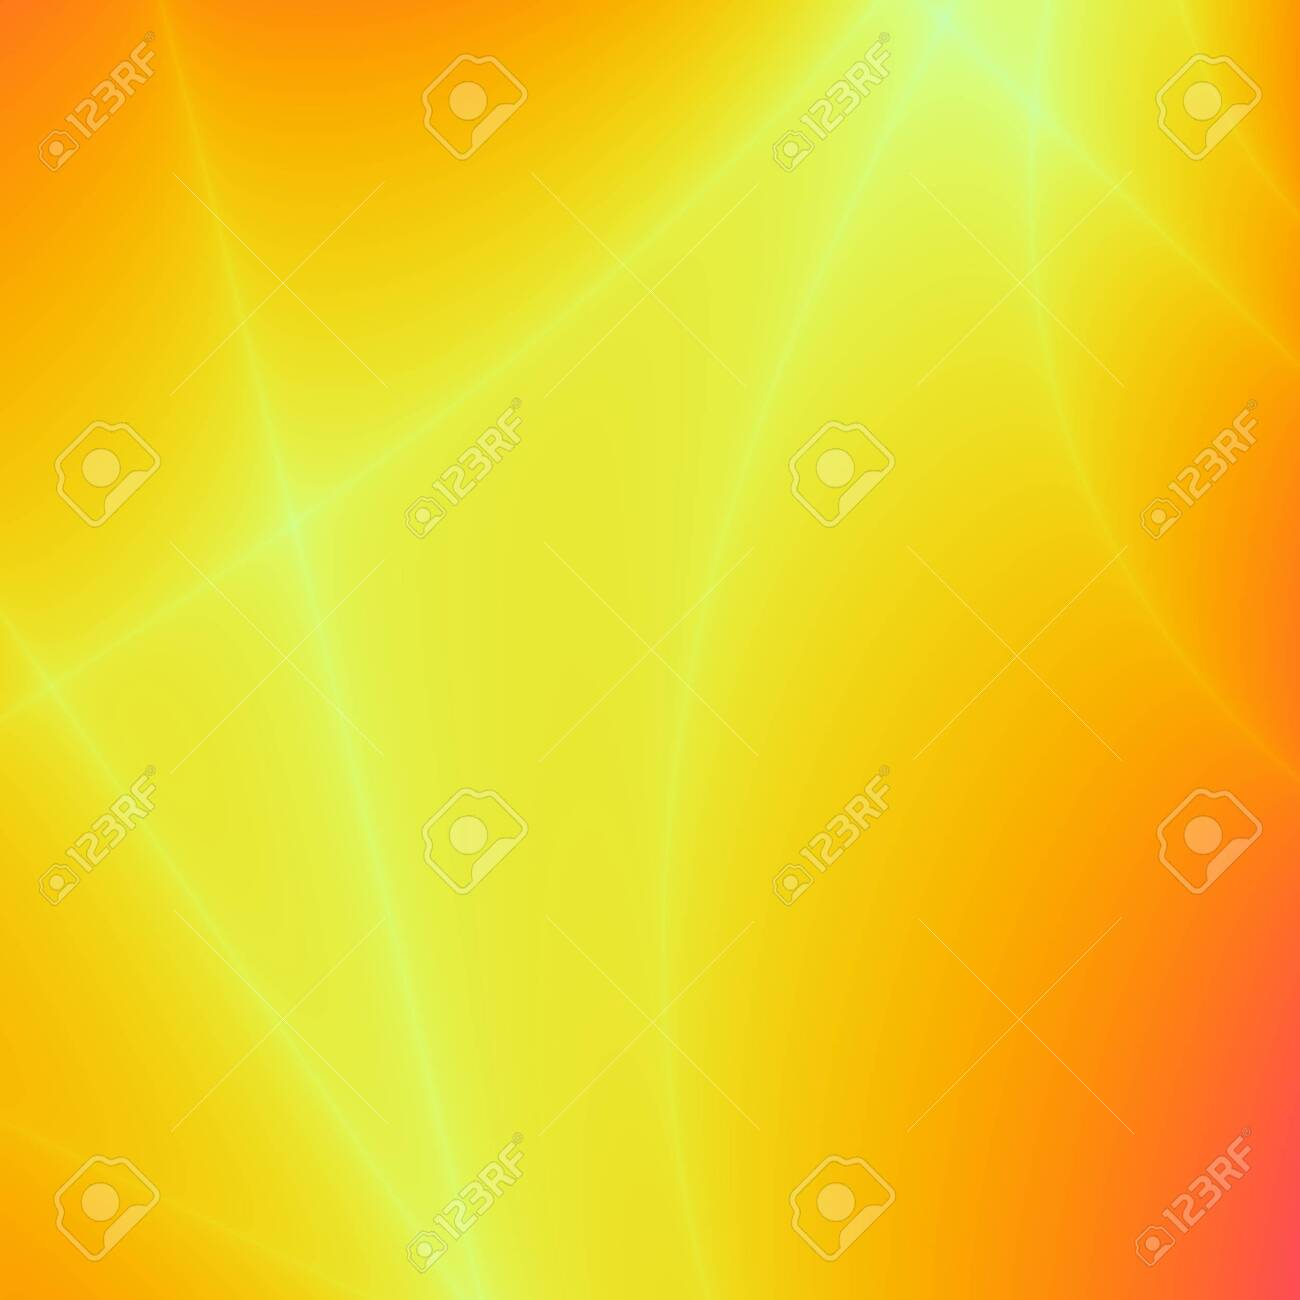 Yellow rays art abstract website wallpaper backdrop - 156564911